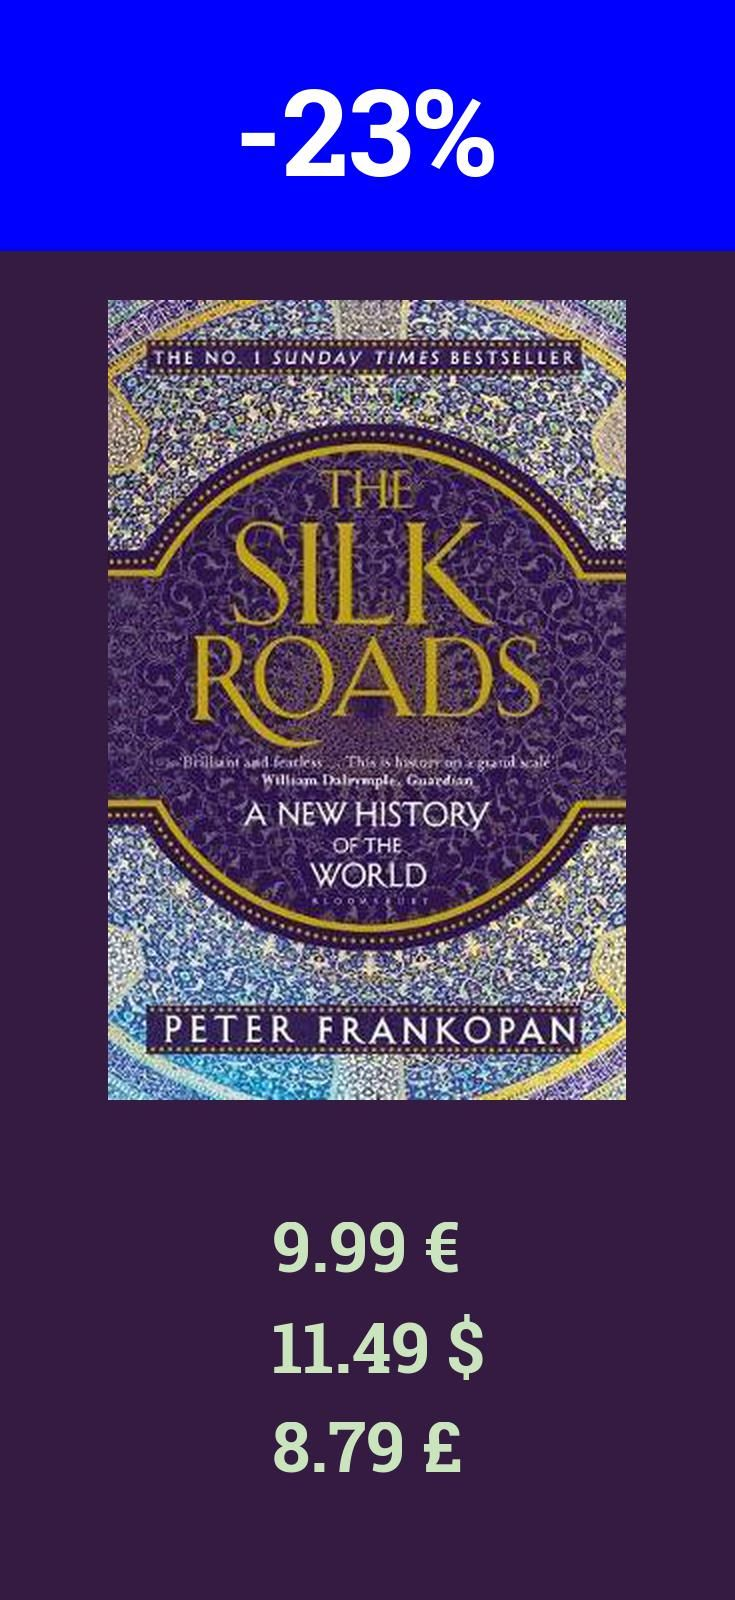 Save 23% on The Silk Roads! Great book, great read and great gift! Many books have been written which claim to be `A New History of the World`. This one fully deserves the title...It is difficult, in a short review, to do justice to a book so ambitious, so detailed and so fascinating as this one -- Gerald DeGroot The Times A book that roves as widely as the geography it describes, encompassing worlds as far removed as those of Herodotus and Saddam Hussein, Hammurabi and Hitler...It is a…